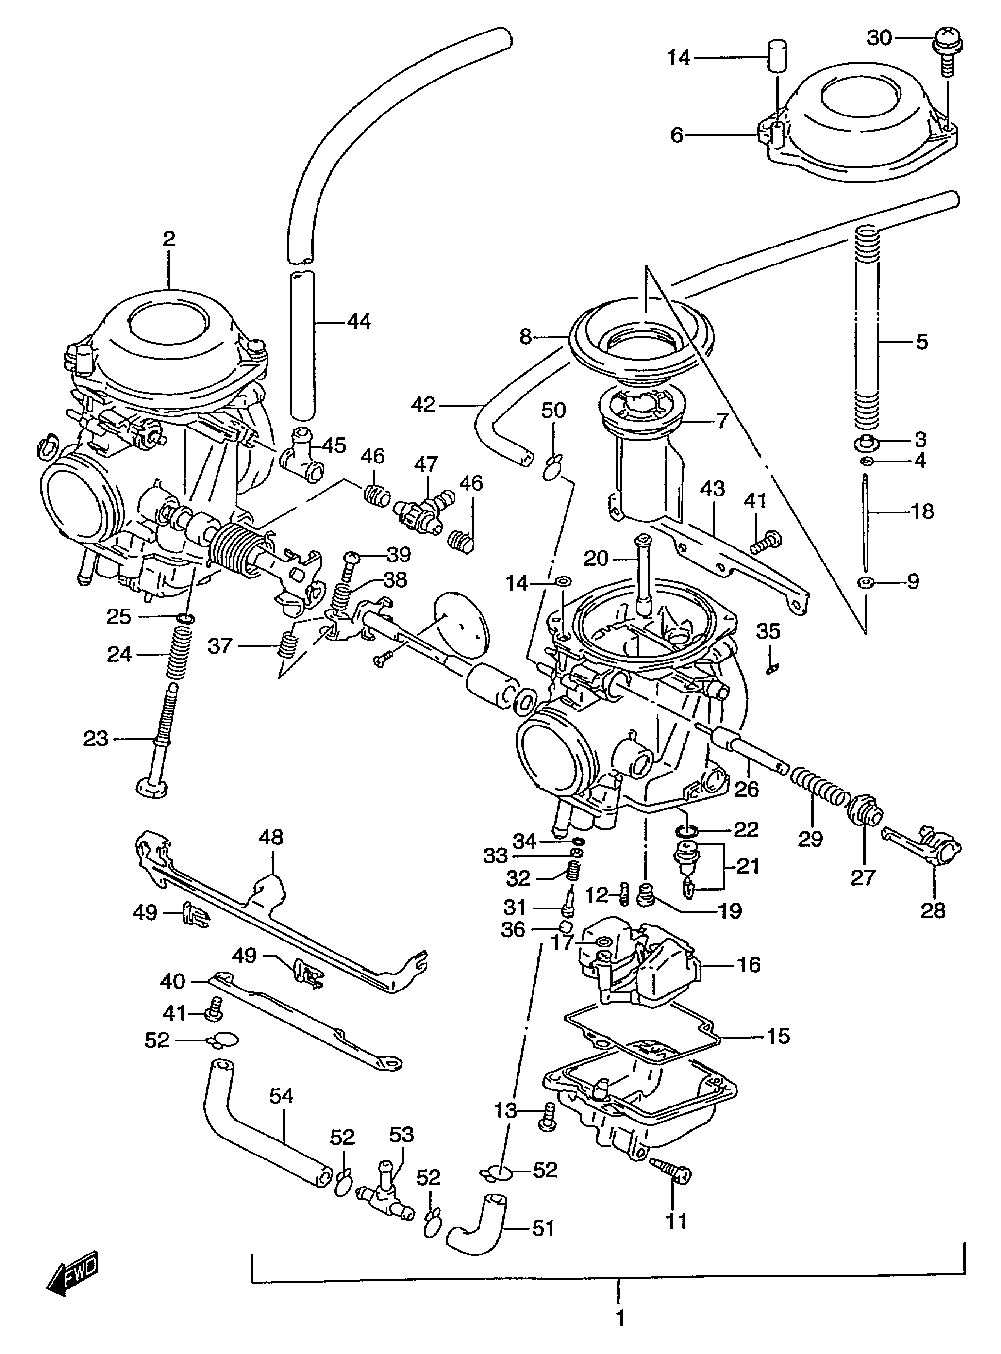 F650 Engine Diagram